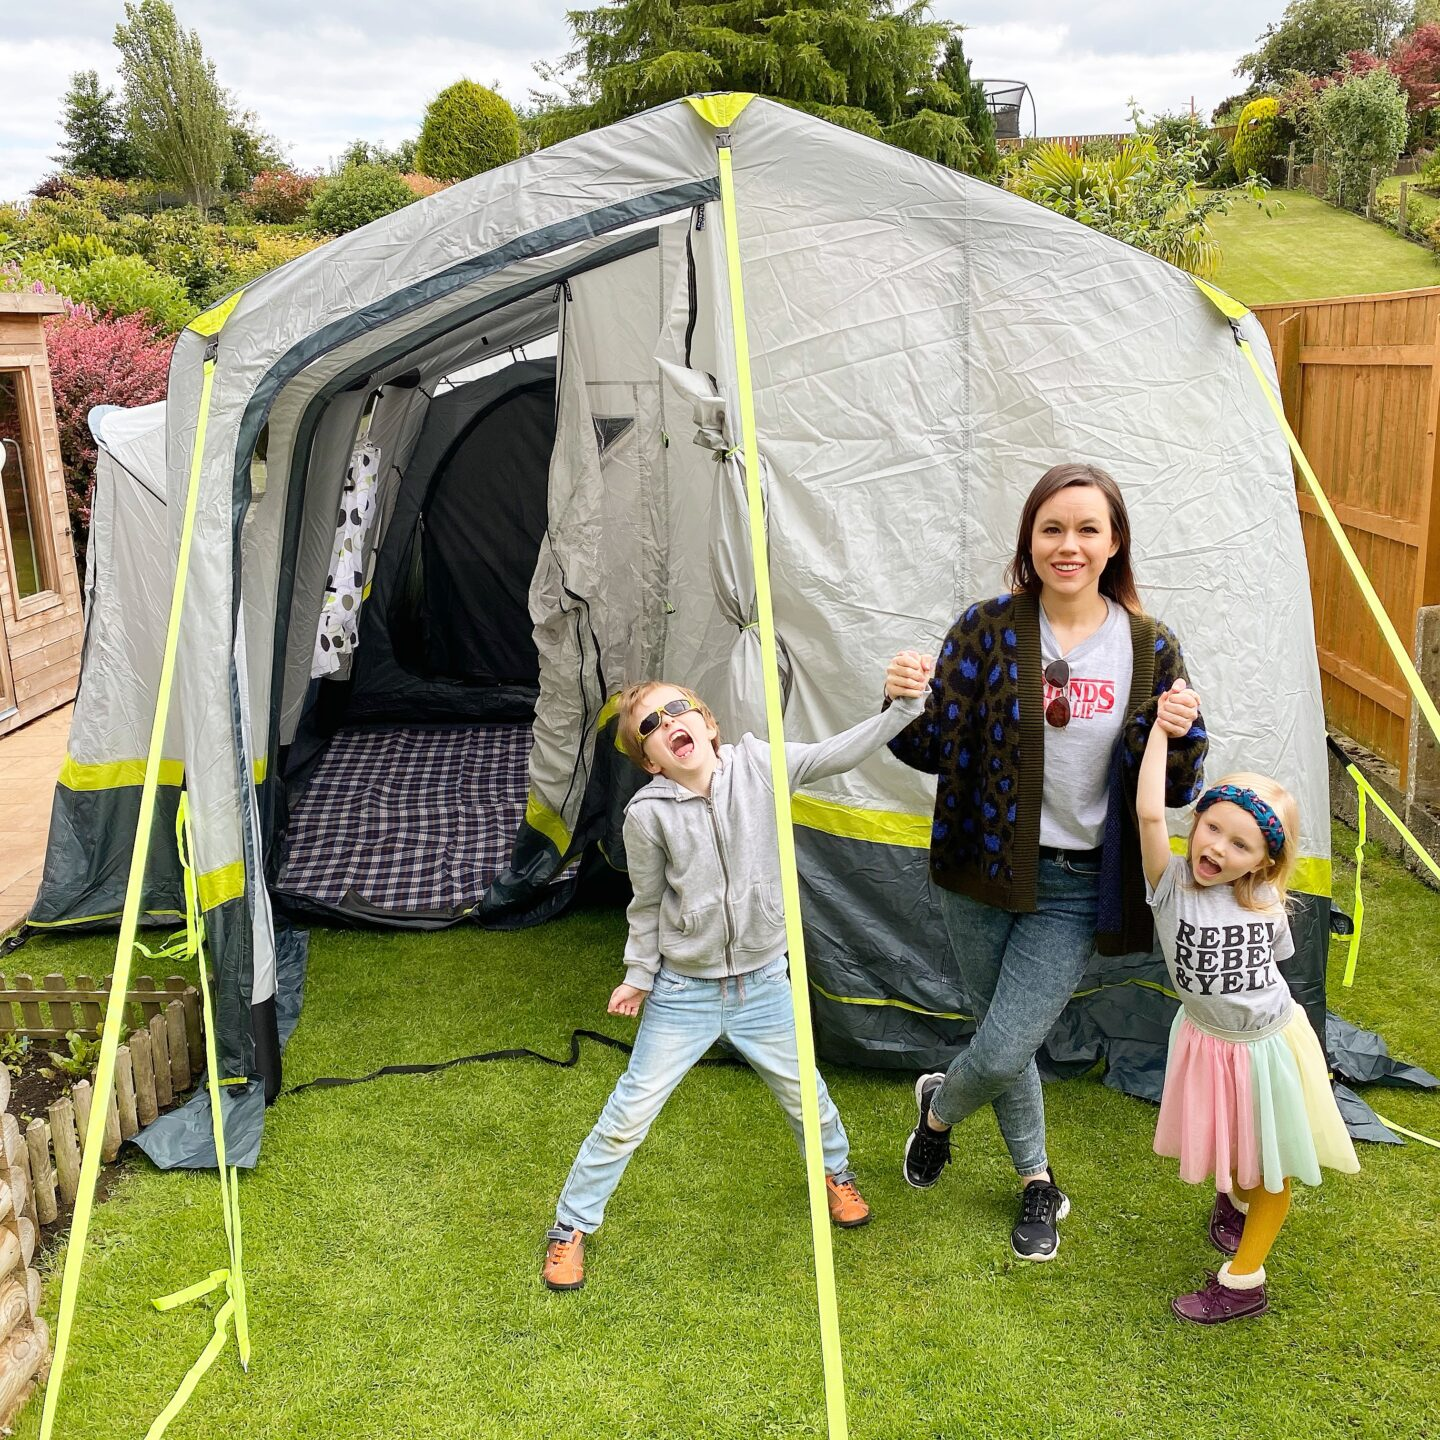 A mother and her son and daughter stand in from of ab OLPRO Home 5 birth family air tent looking happy and excited.